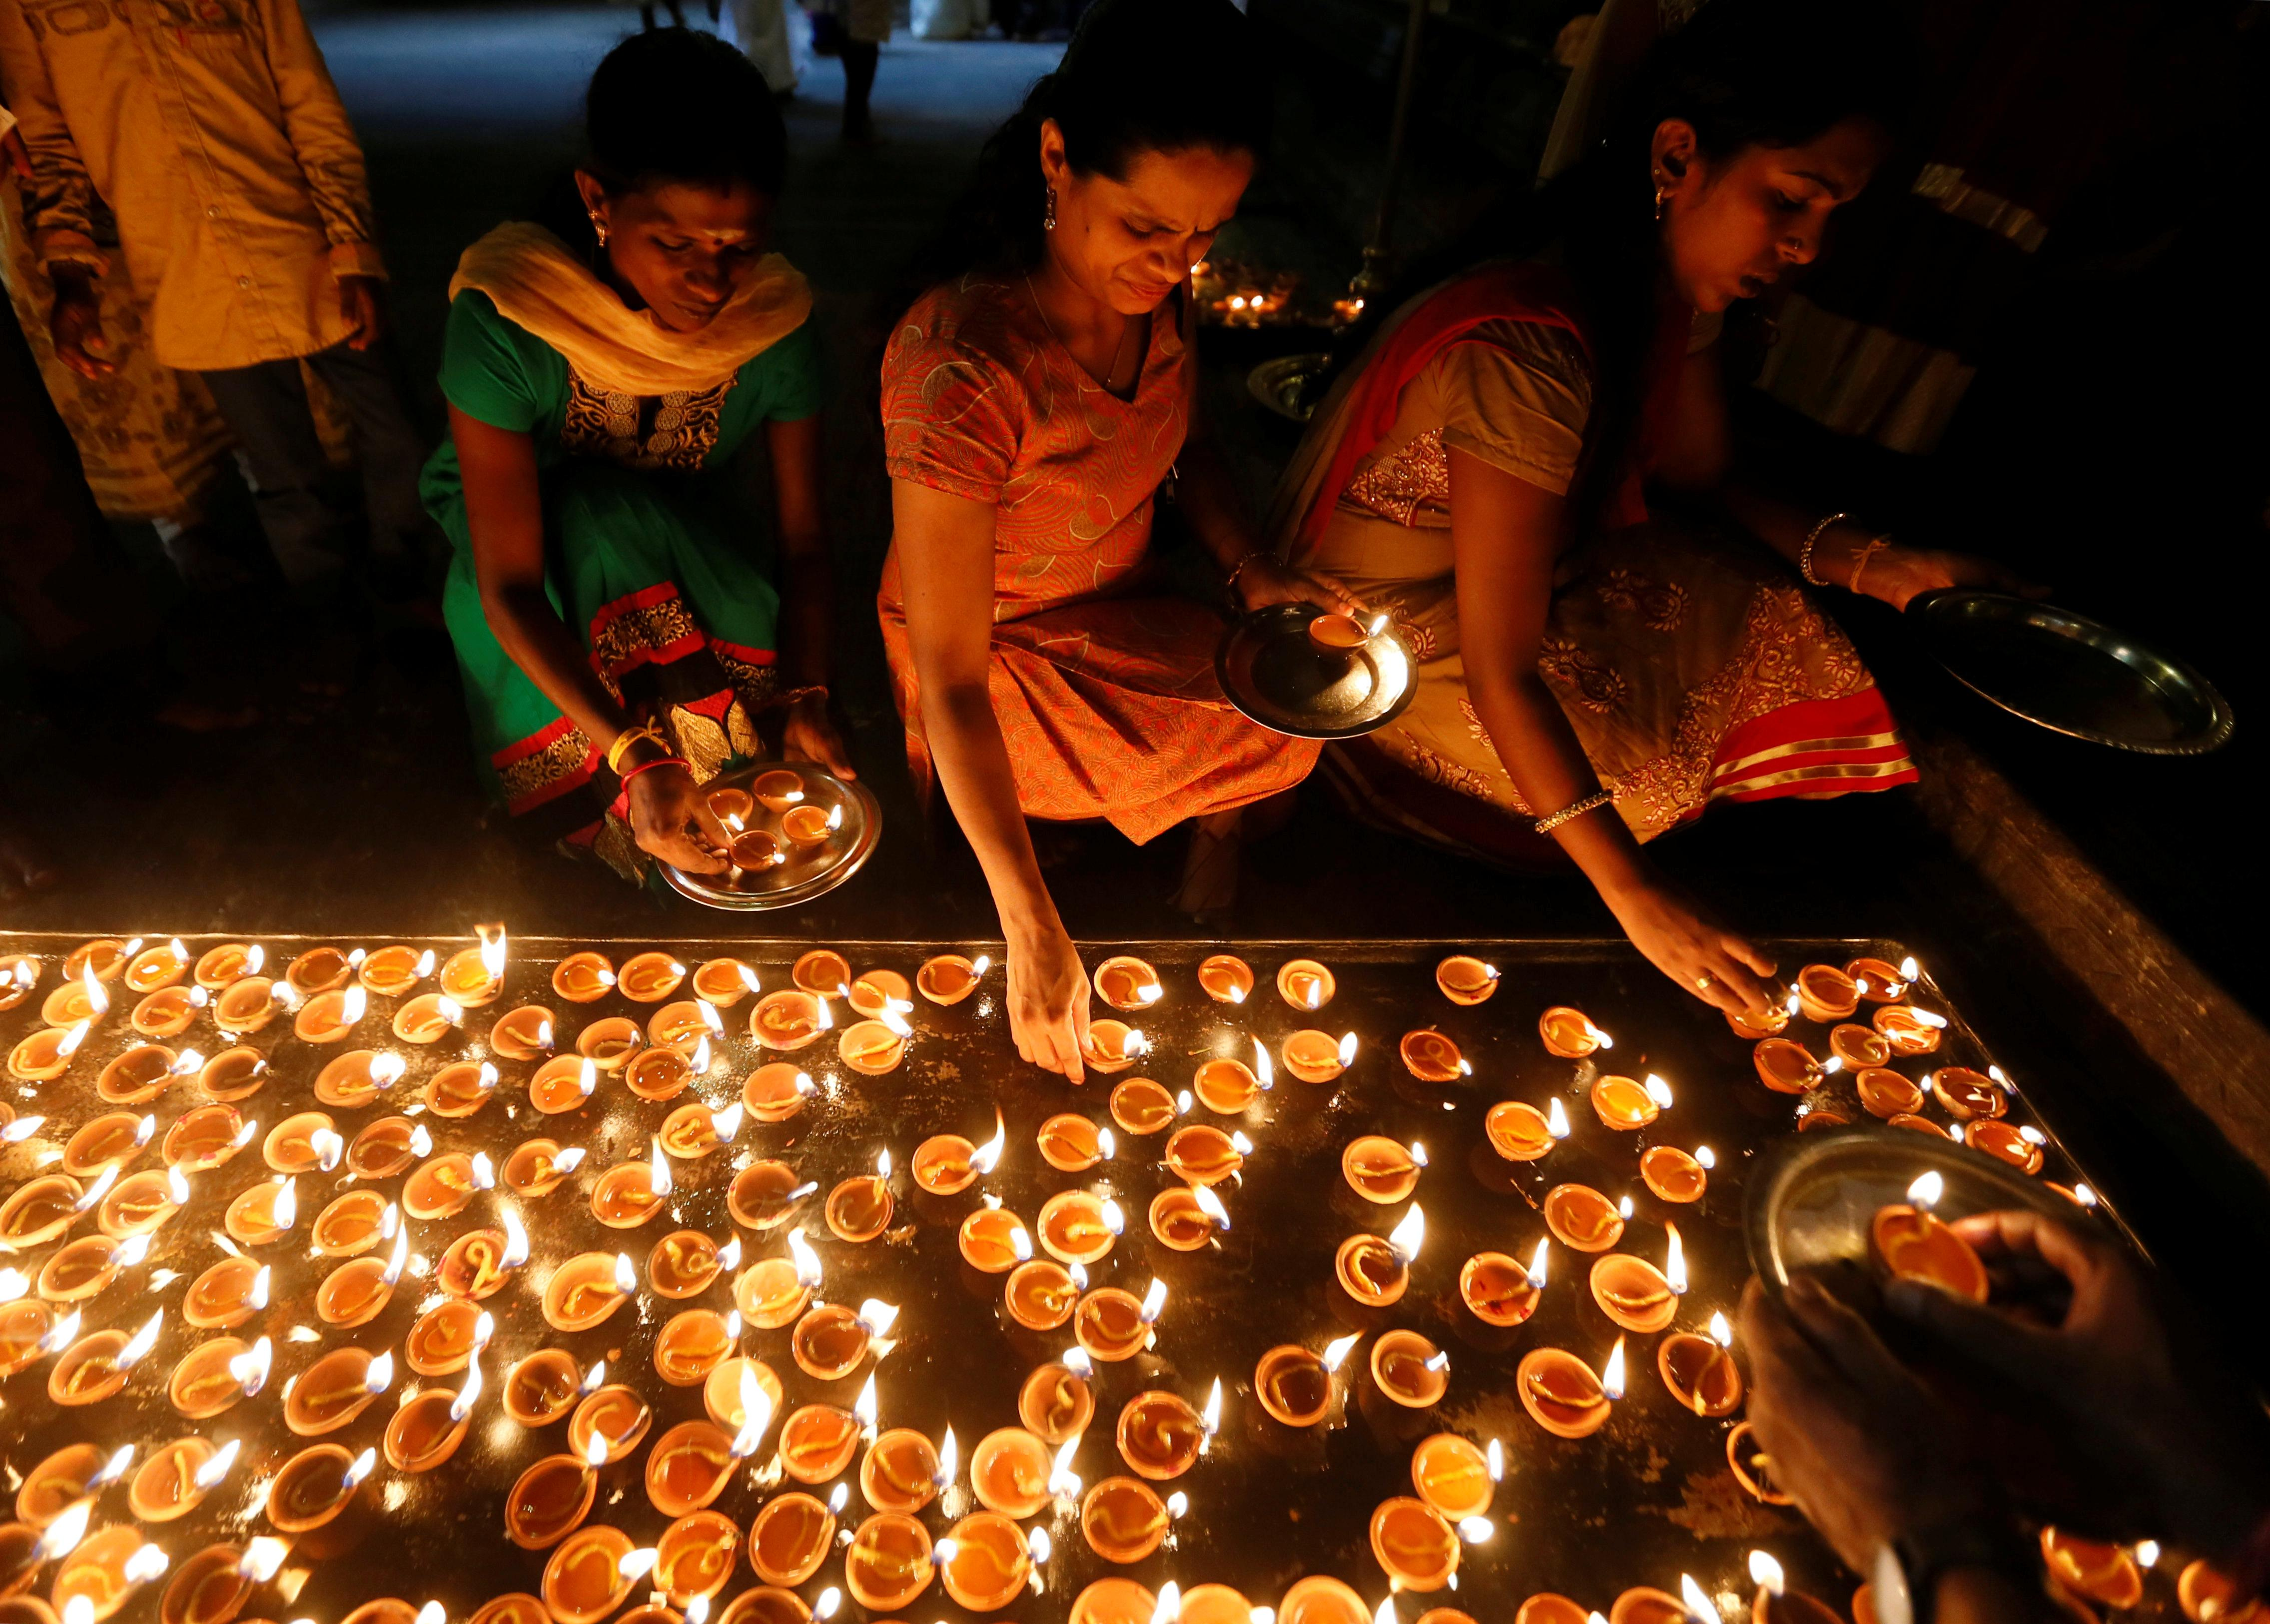 Diwali 2017 Quotes: Greetings, Wishes For Indian Festival